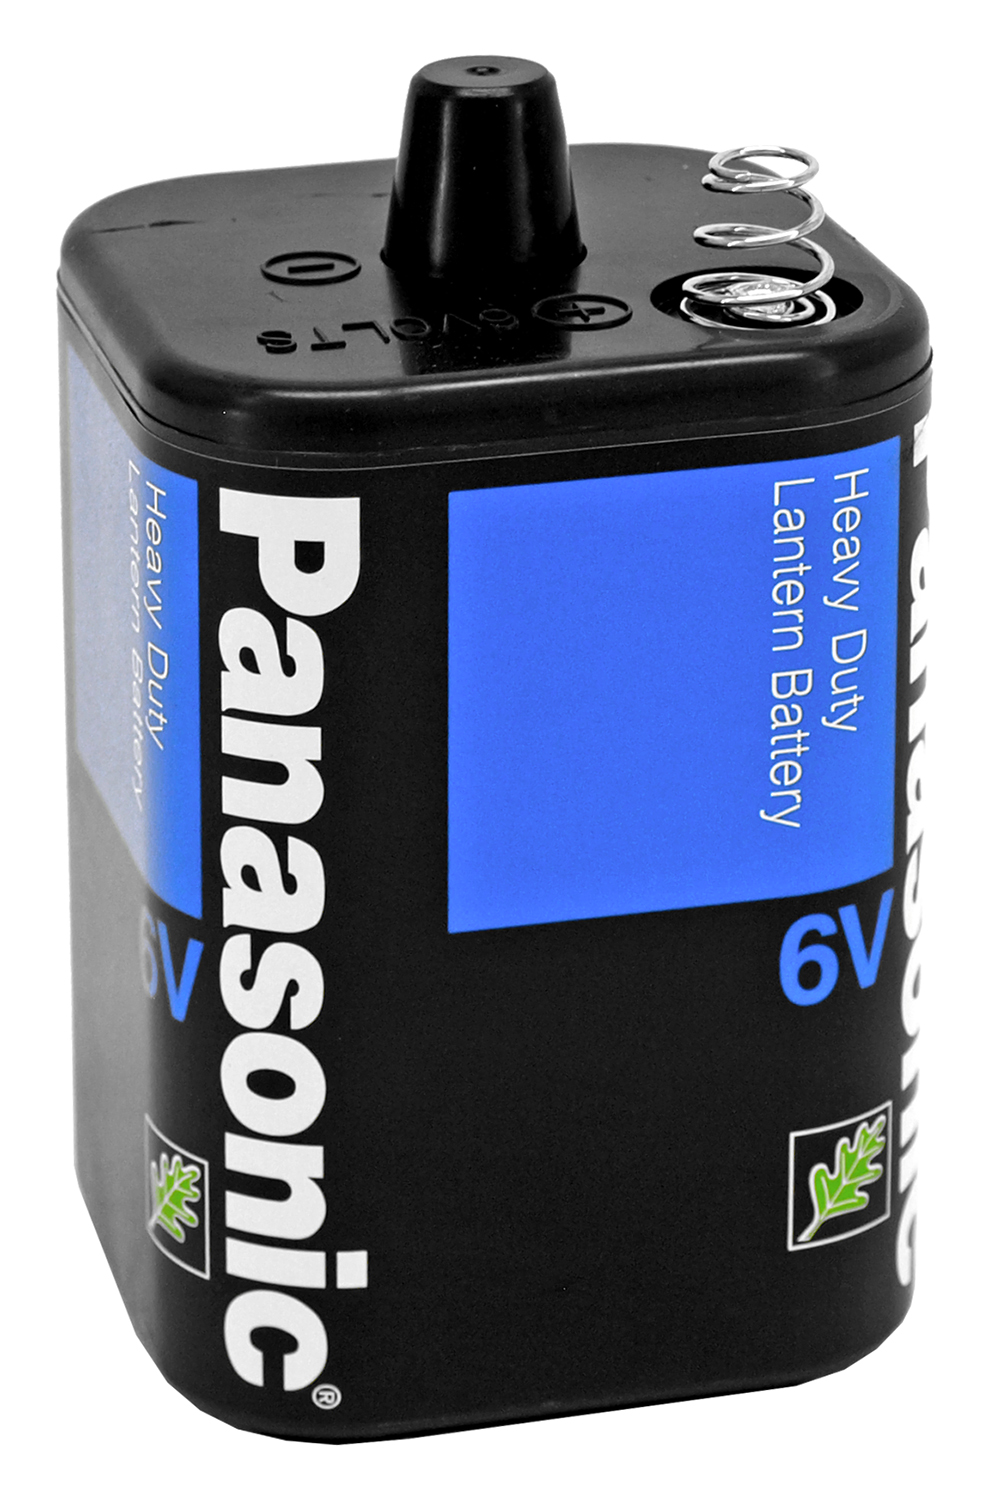 Panasonic 6V Heavy Duty Lantern Battery